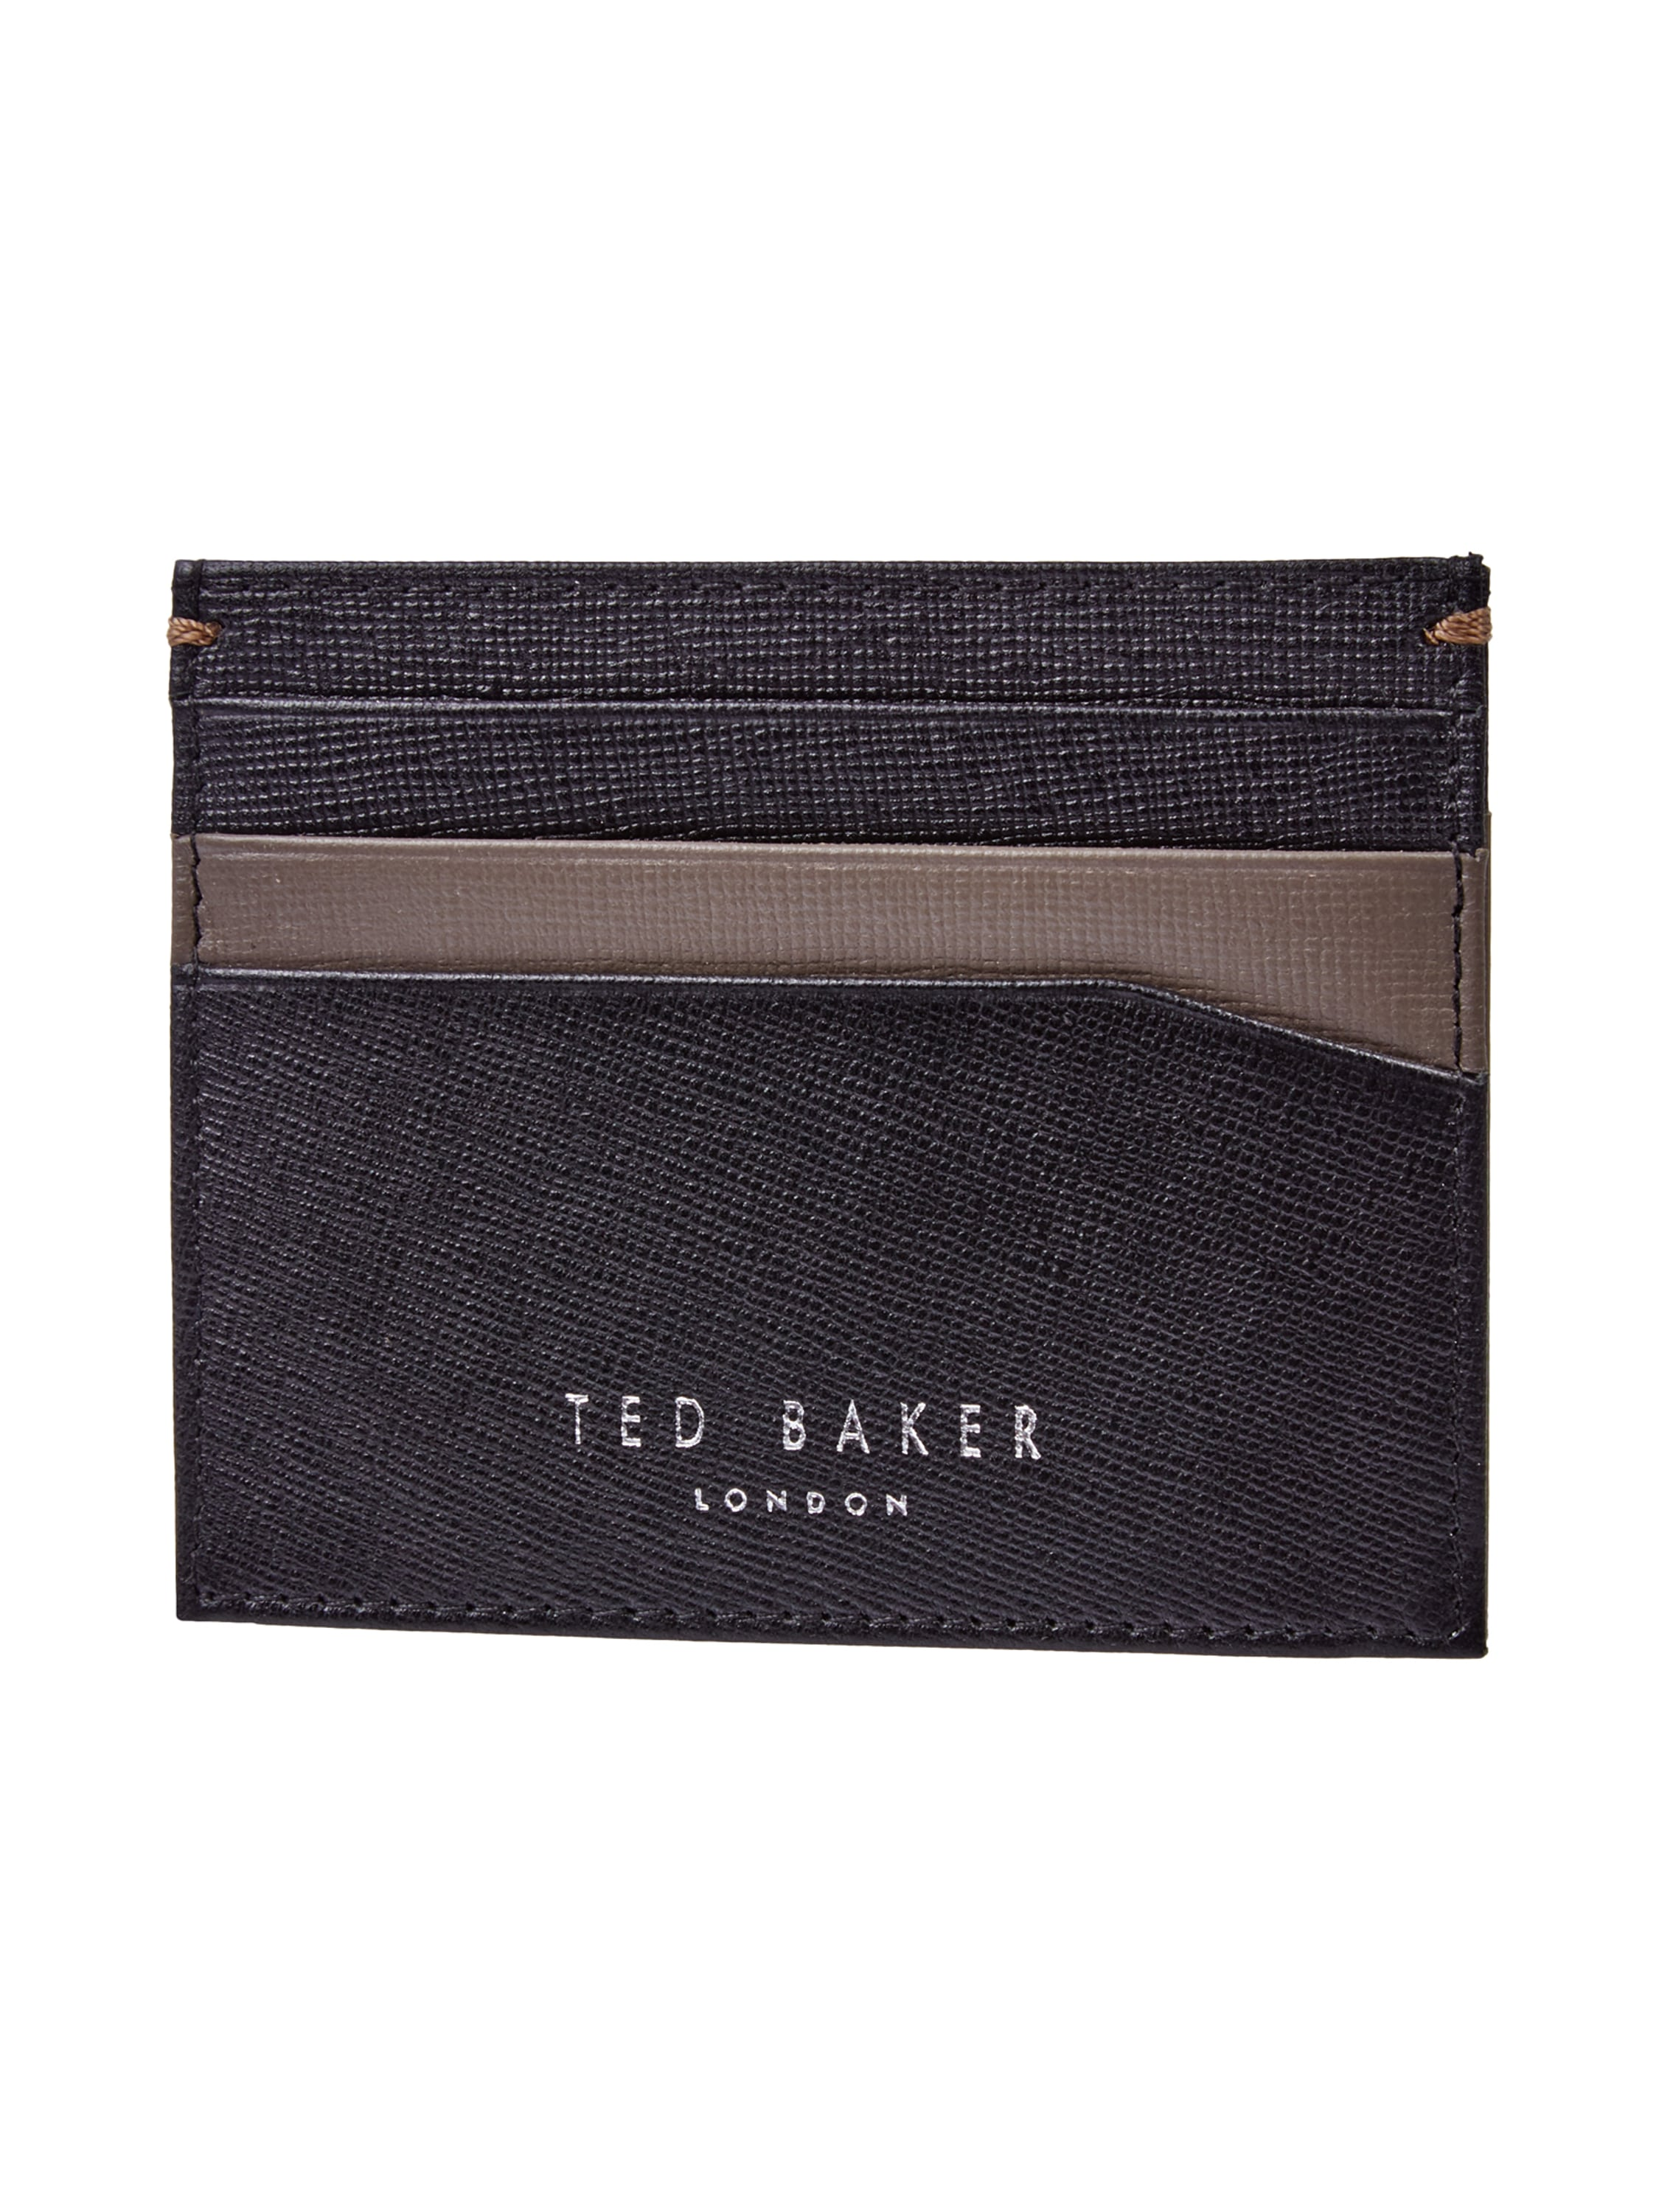 ted baker accessoire set aus geldb rse und kartenetui in grau schwarz online kaufen 9513896. Black Bedroom Furniture Sets. Home Design Ideas